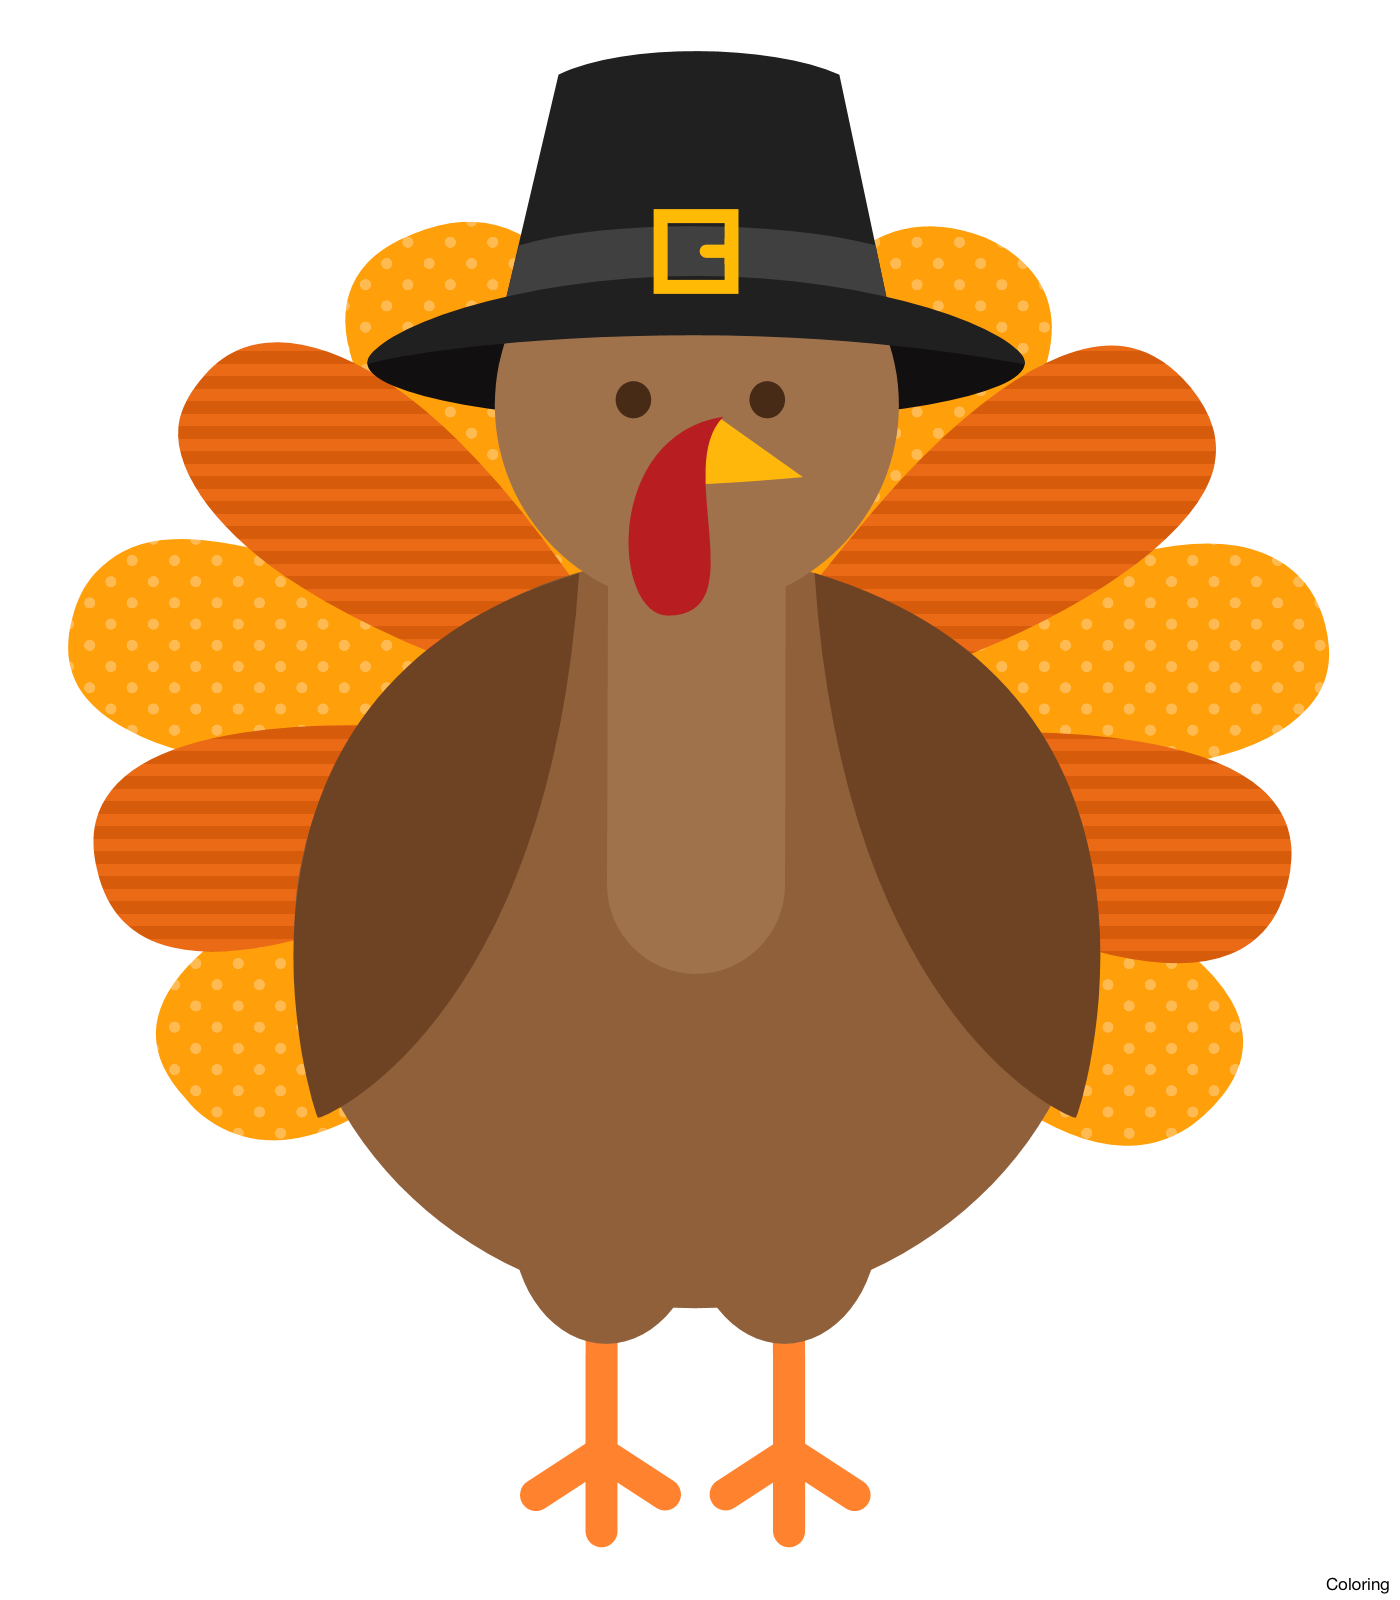 Hunting clipart hunting turkey. Animated cilpart awesome ideas